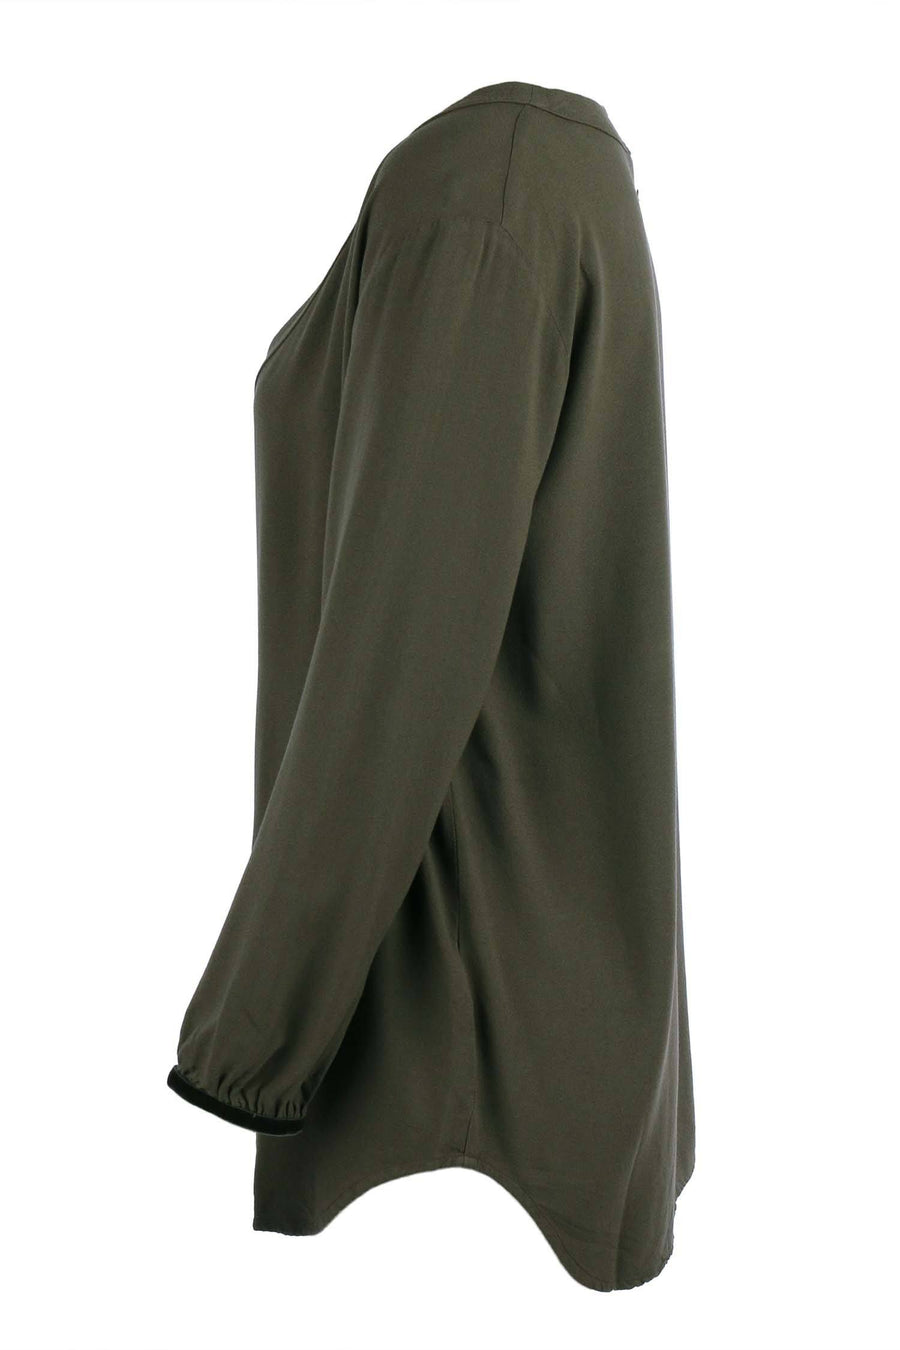 Shop Online Violante Top in Dark Green by Nolita  Frockaholics Tops